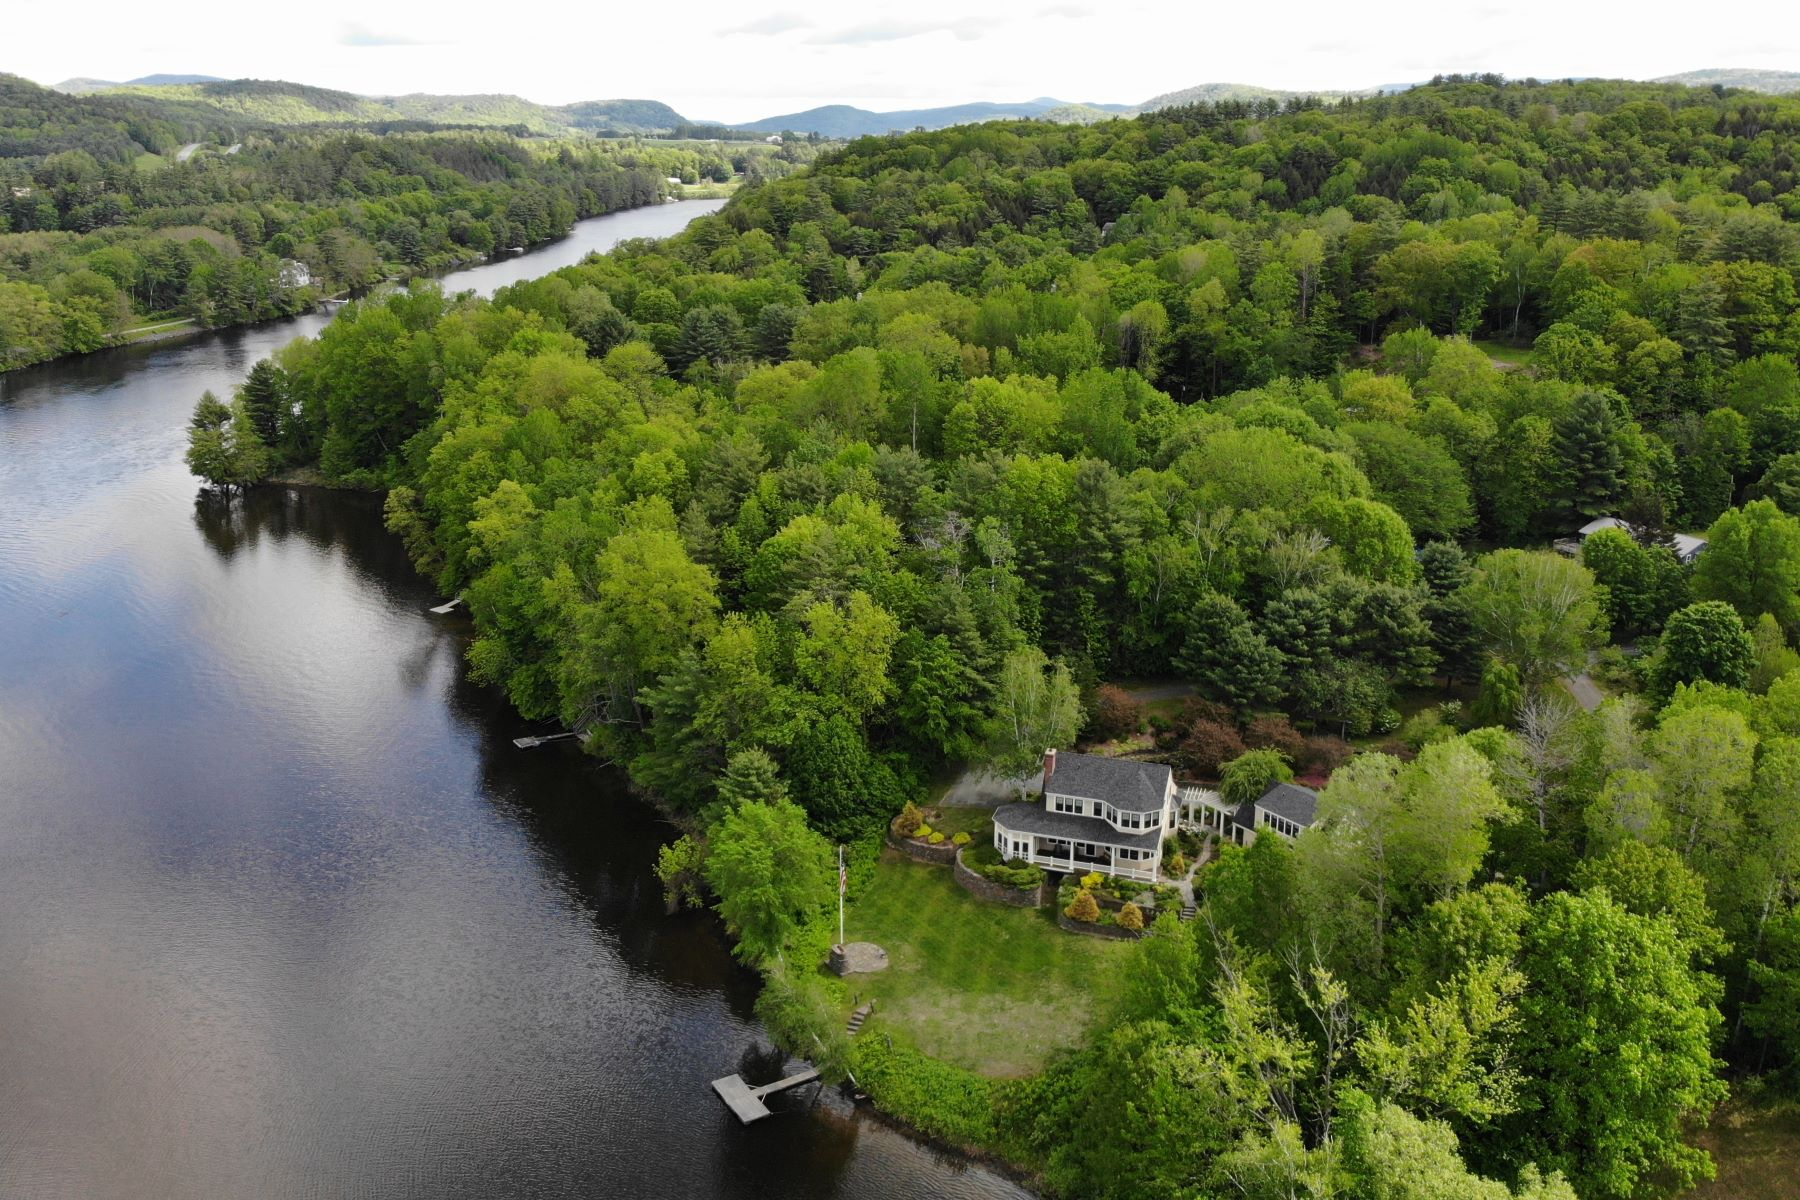 Single Family Home for Sale at 10 River Road, Hanover 10 River Rd Hanover, New Hampshire 03755 United States